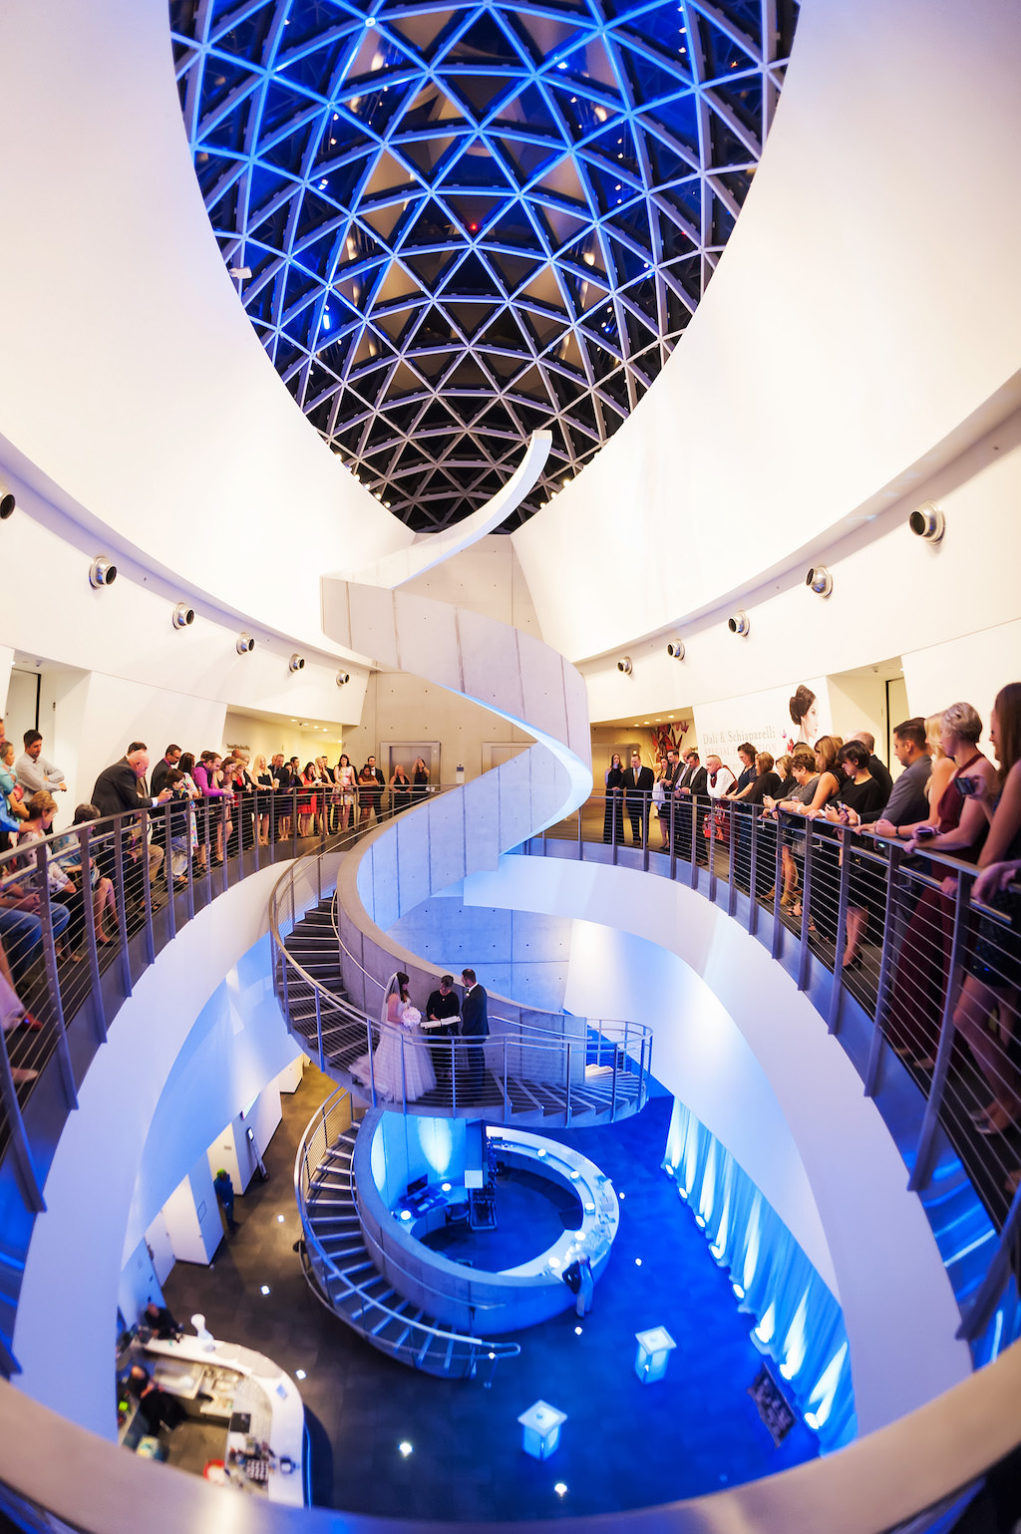 Salvador Dali Museum Ceremony Spiral White Staircase with Blue Uplighting and Bride and Groom Exchanging Vows with Guests Overlooking Balcony